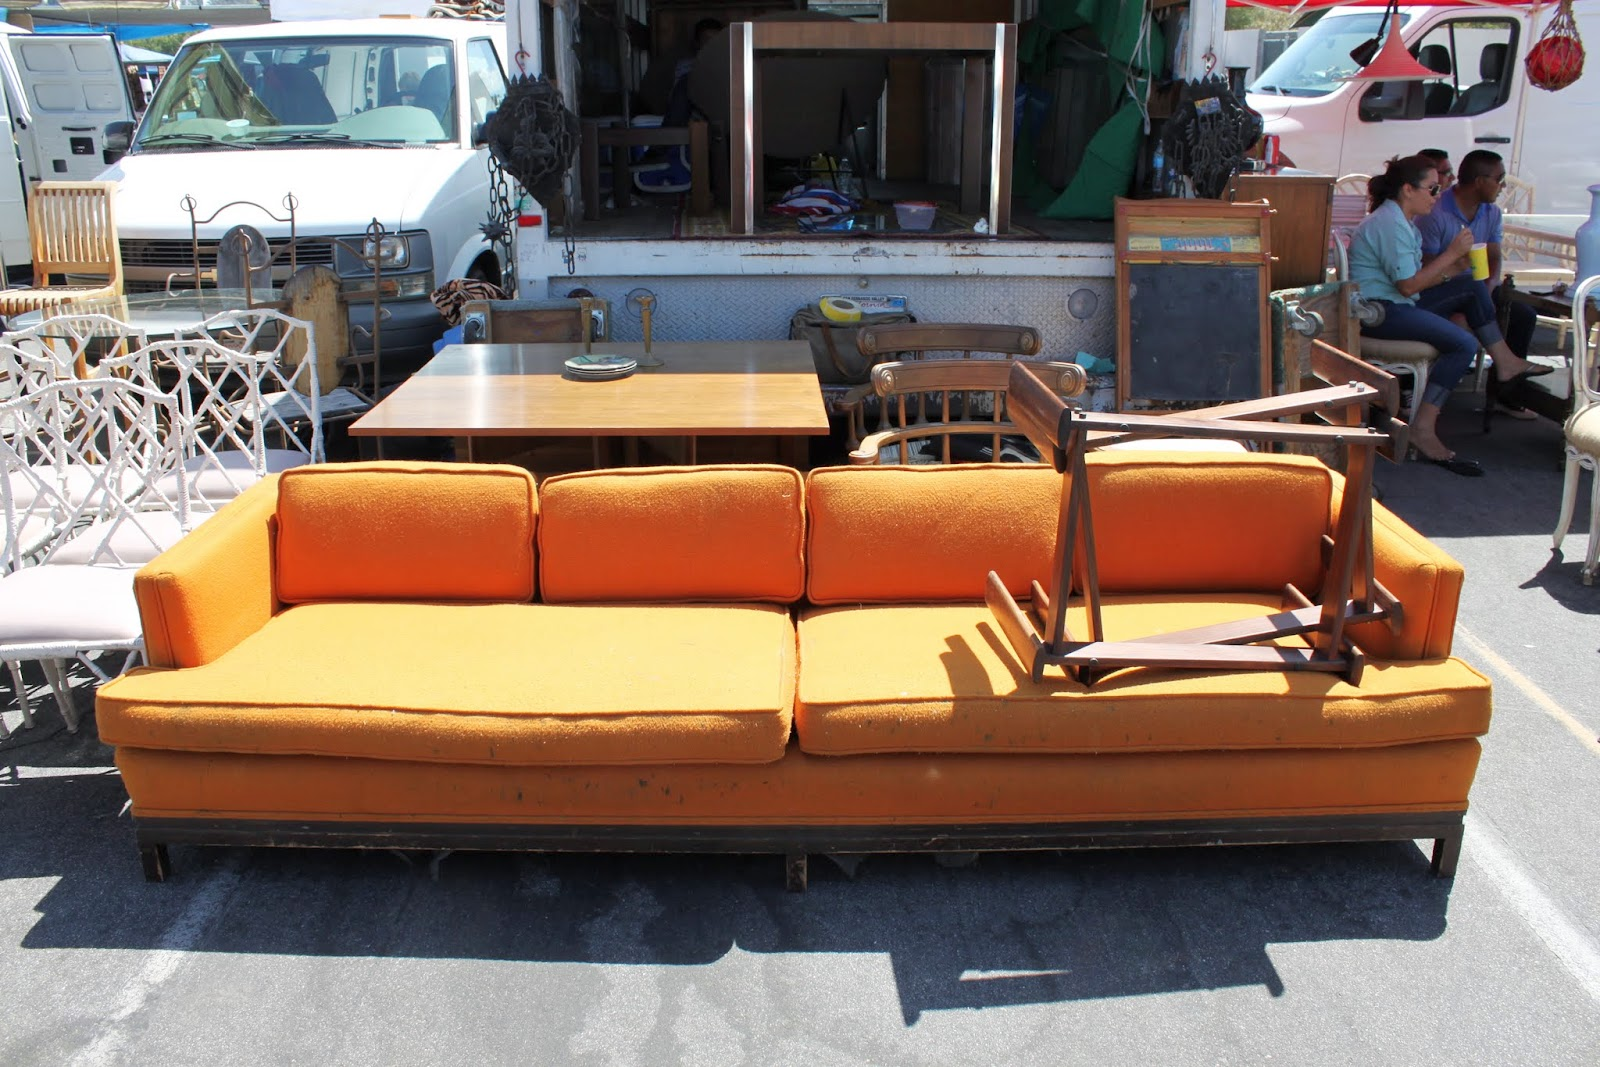 Pasadena rose bowl flea market mid century modern vintage and retro